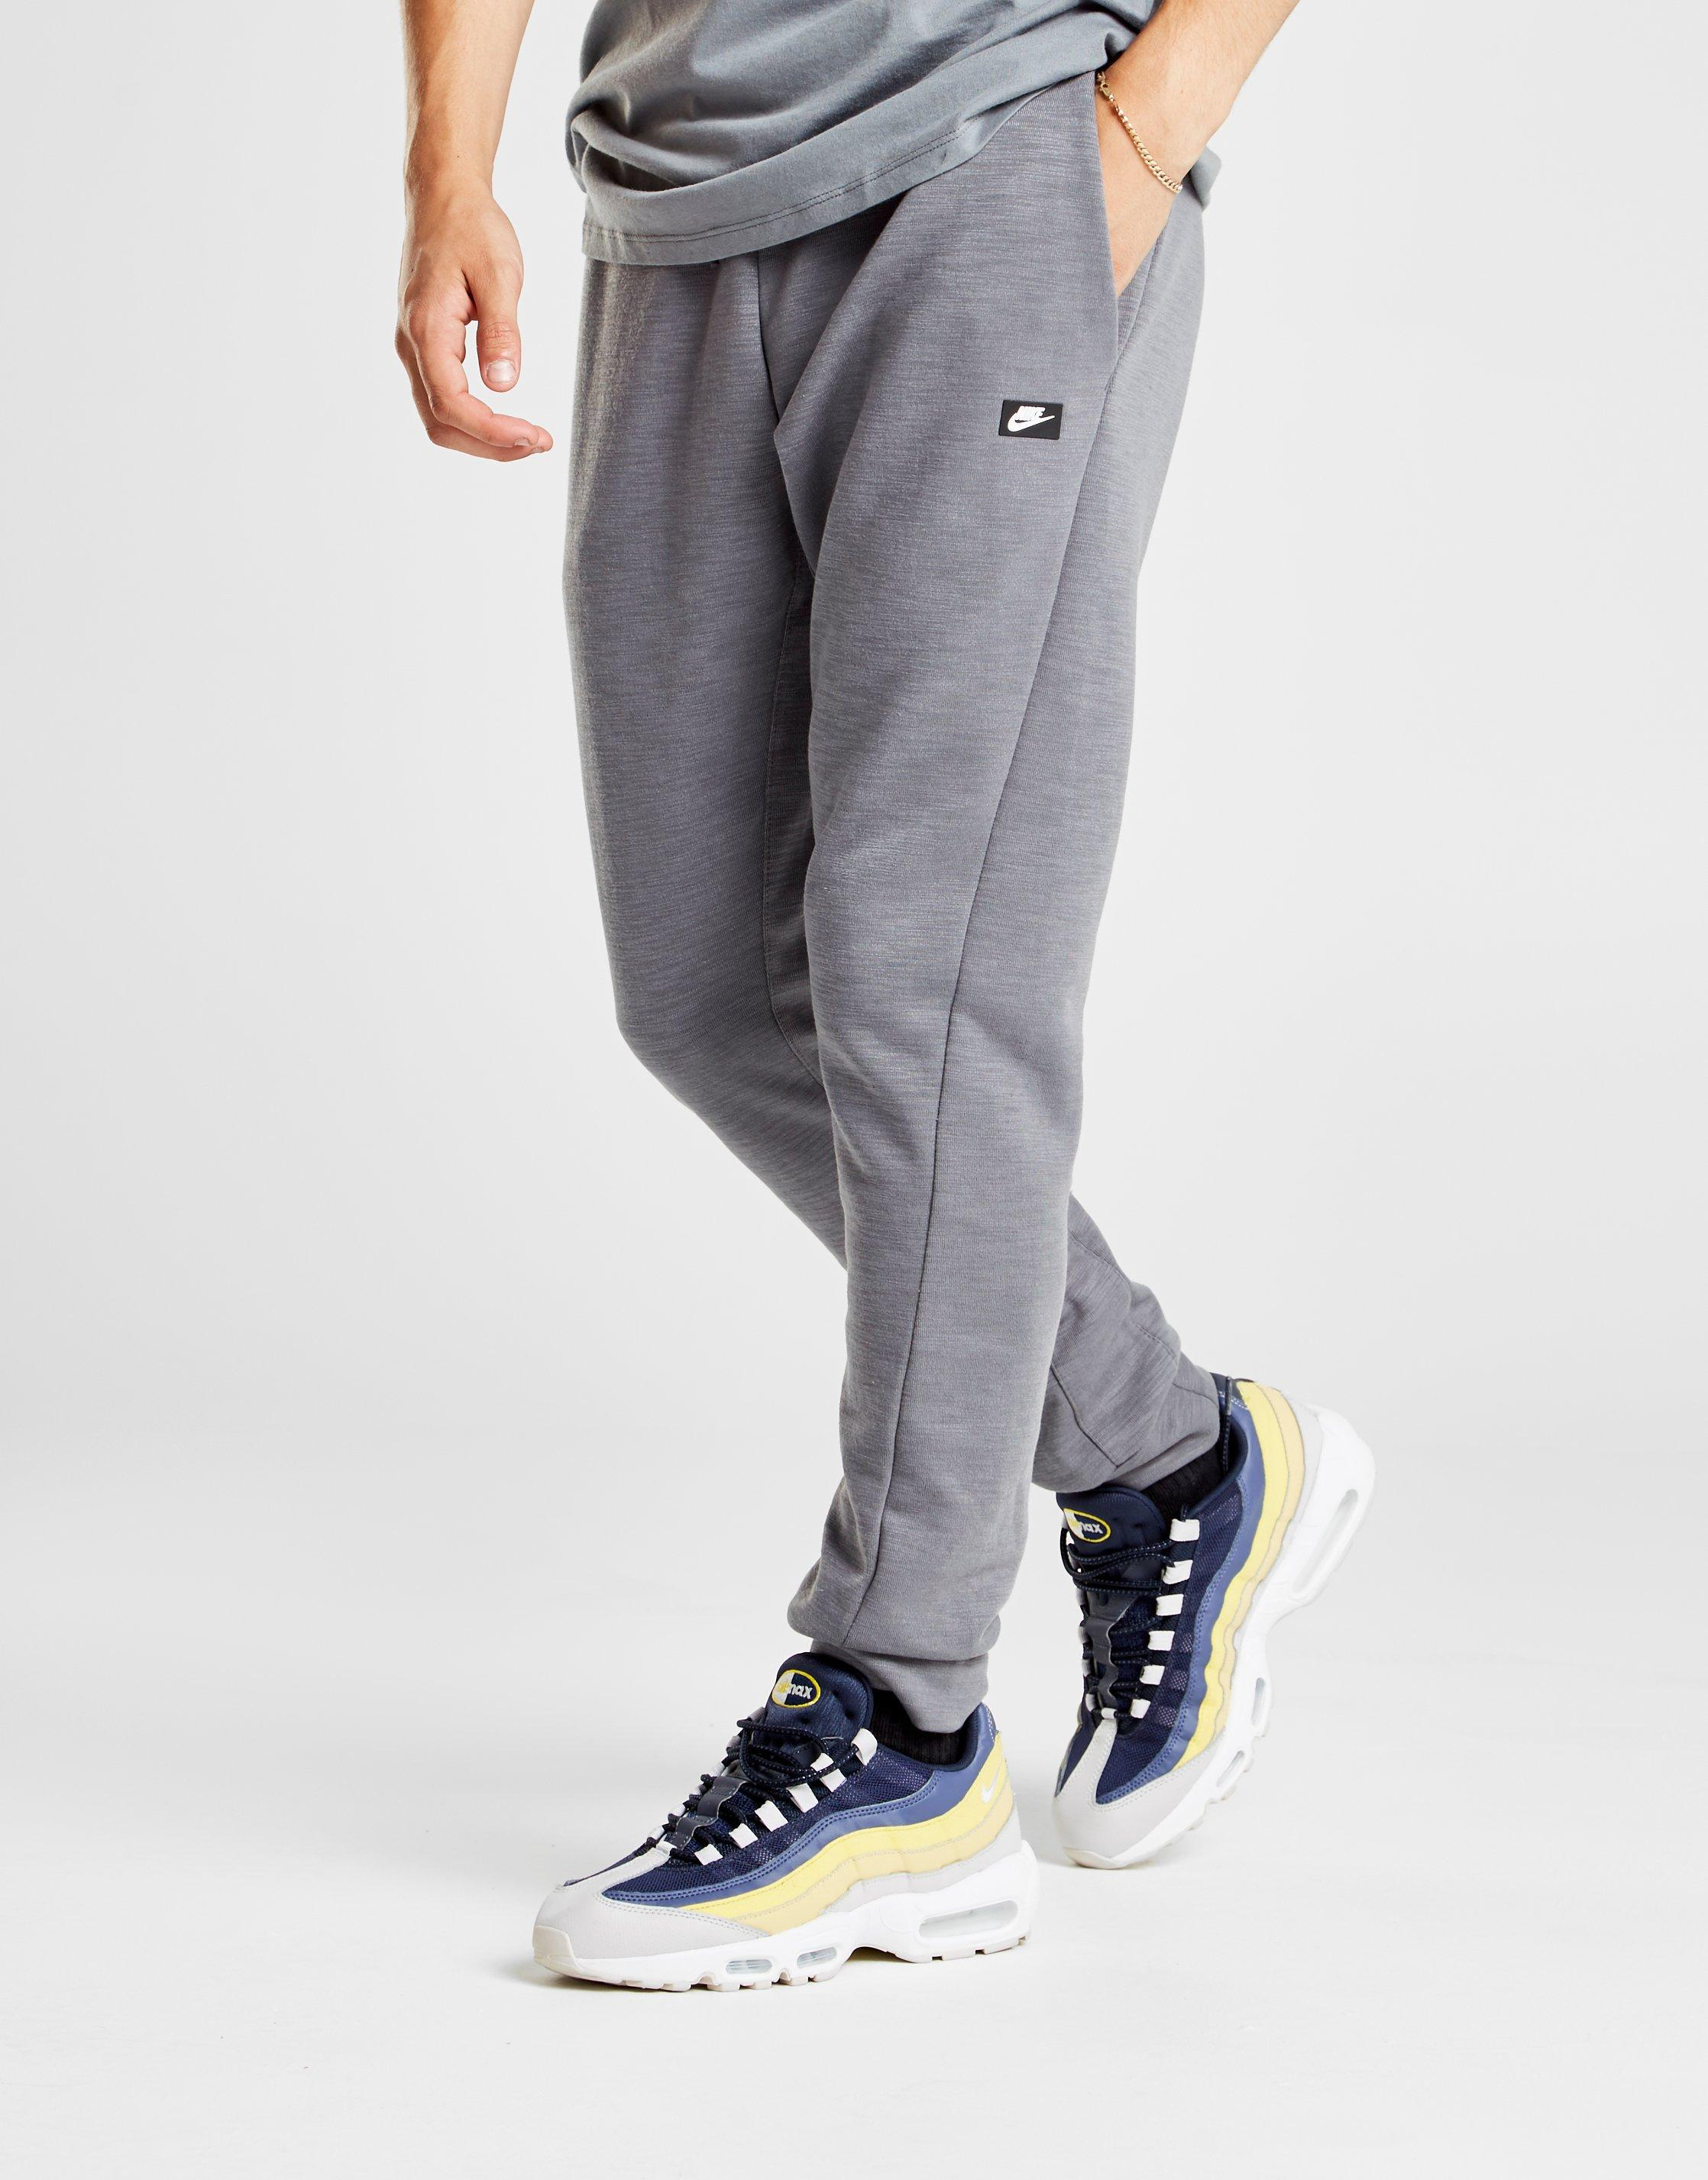 clear-cut texture performance sportswear fast color Nike Optic Fleece Pants in Black for Men - Lyst